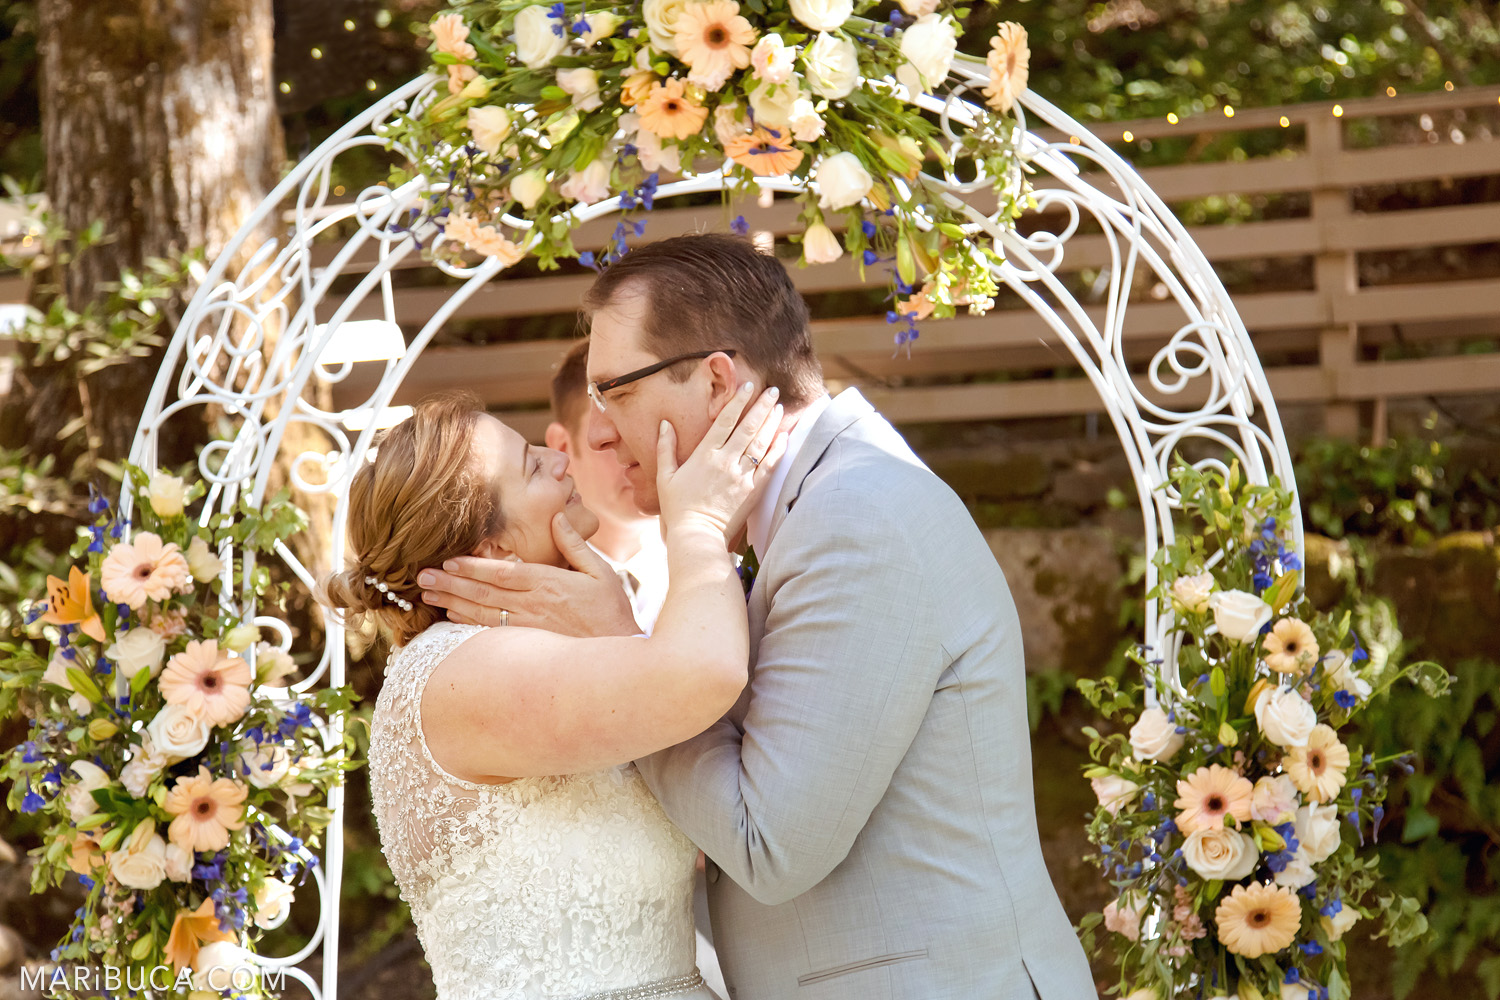 First kiss the bride and groom as newlyweds couple surrounded white arch and fresh light orange flowers in the Saratoga Springs Wedding.